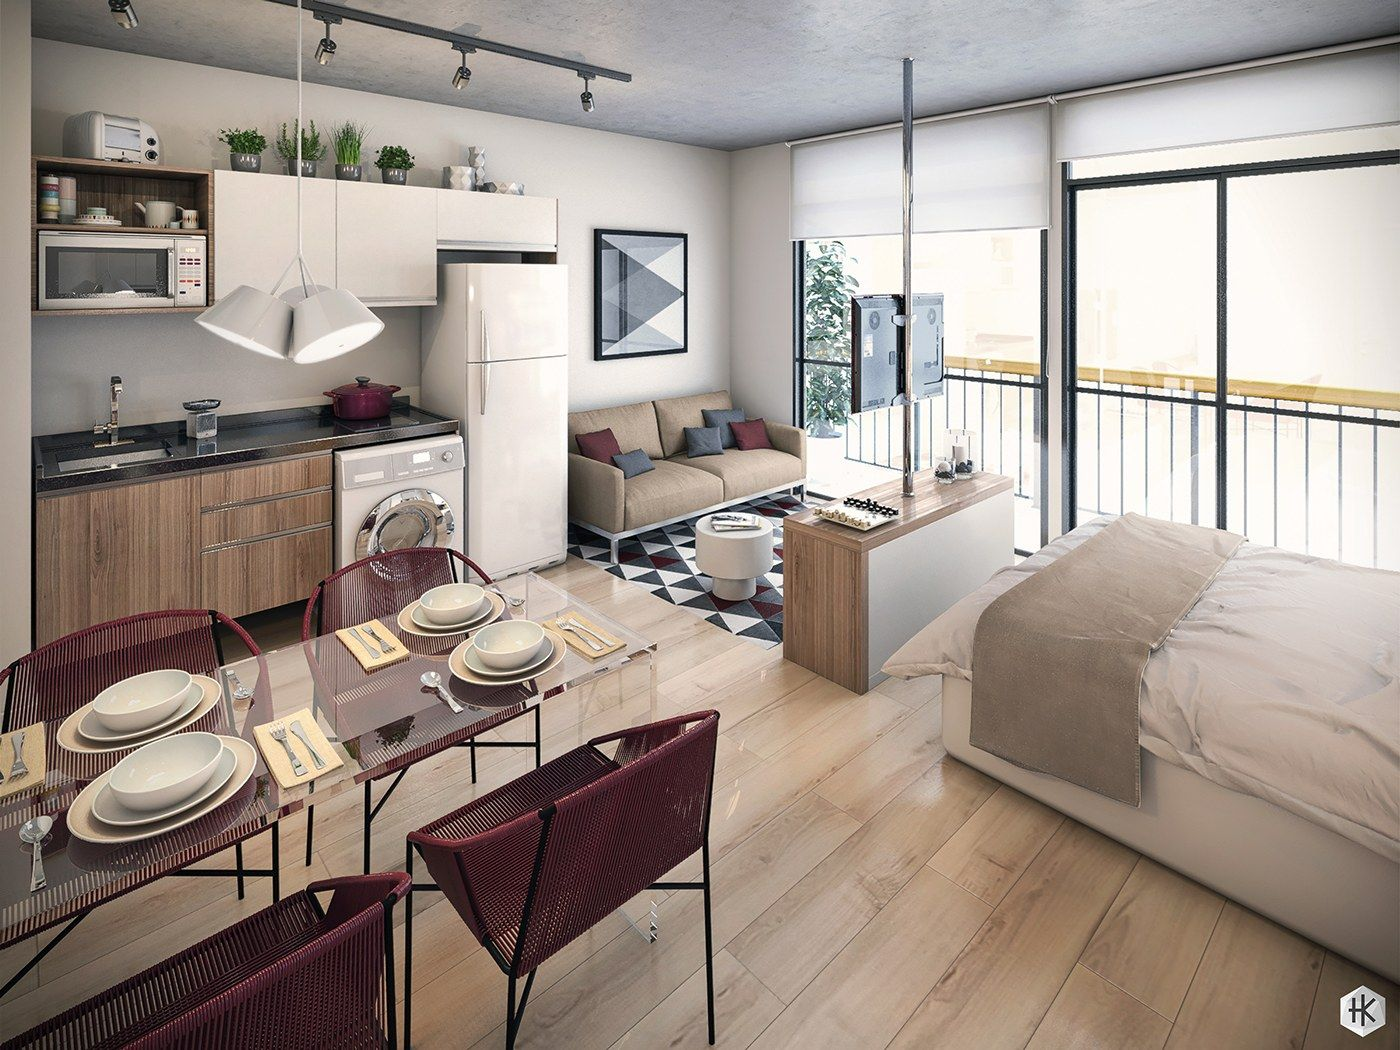 5 Small Studio Apartments With Beautiful Design | Apartment ...